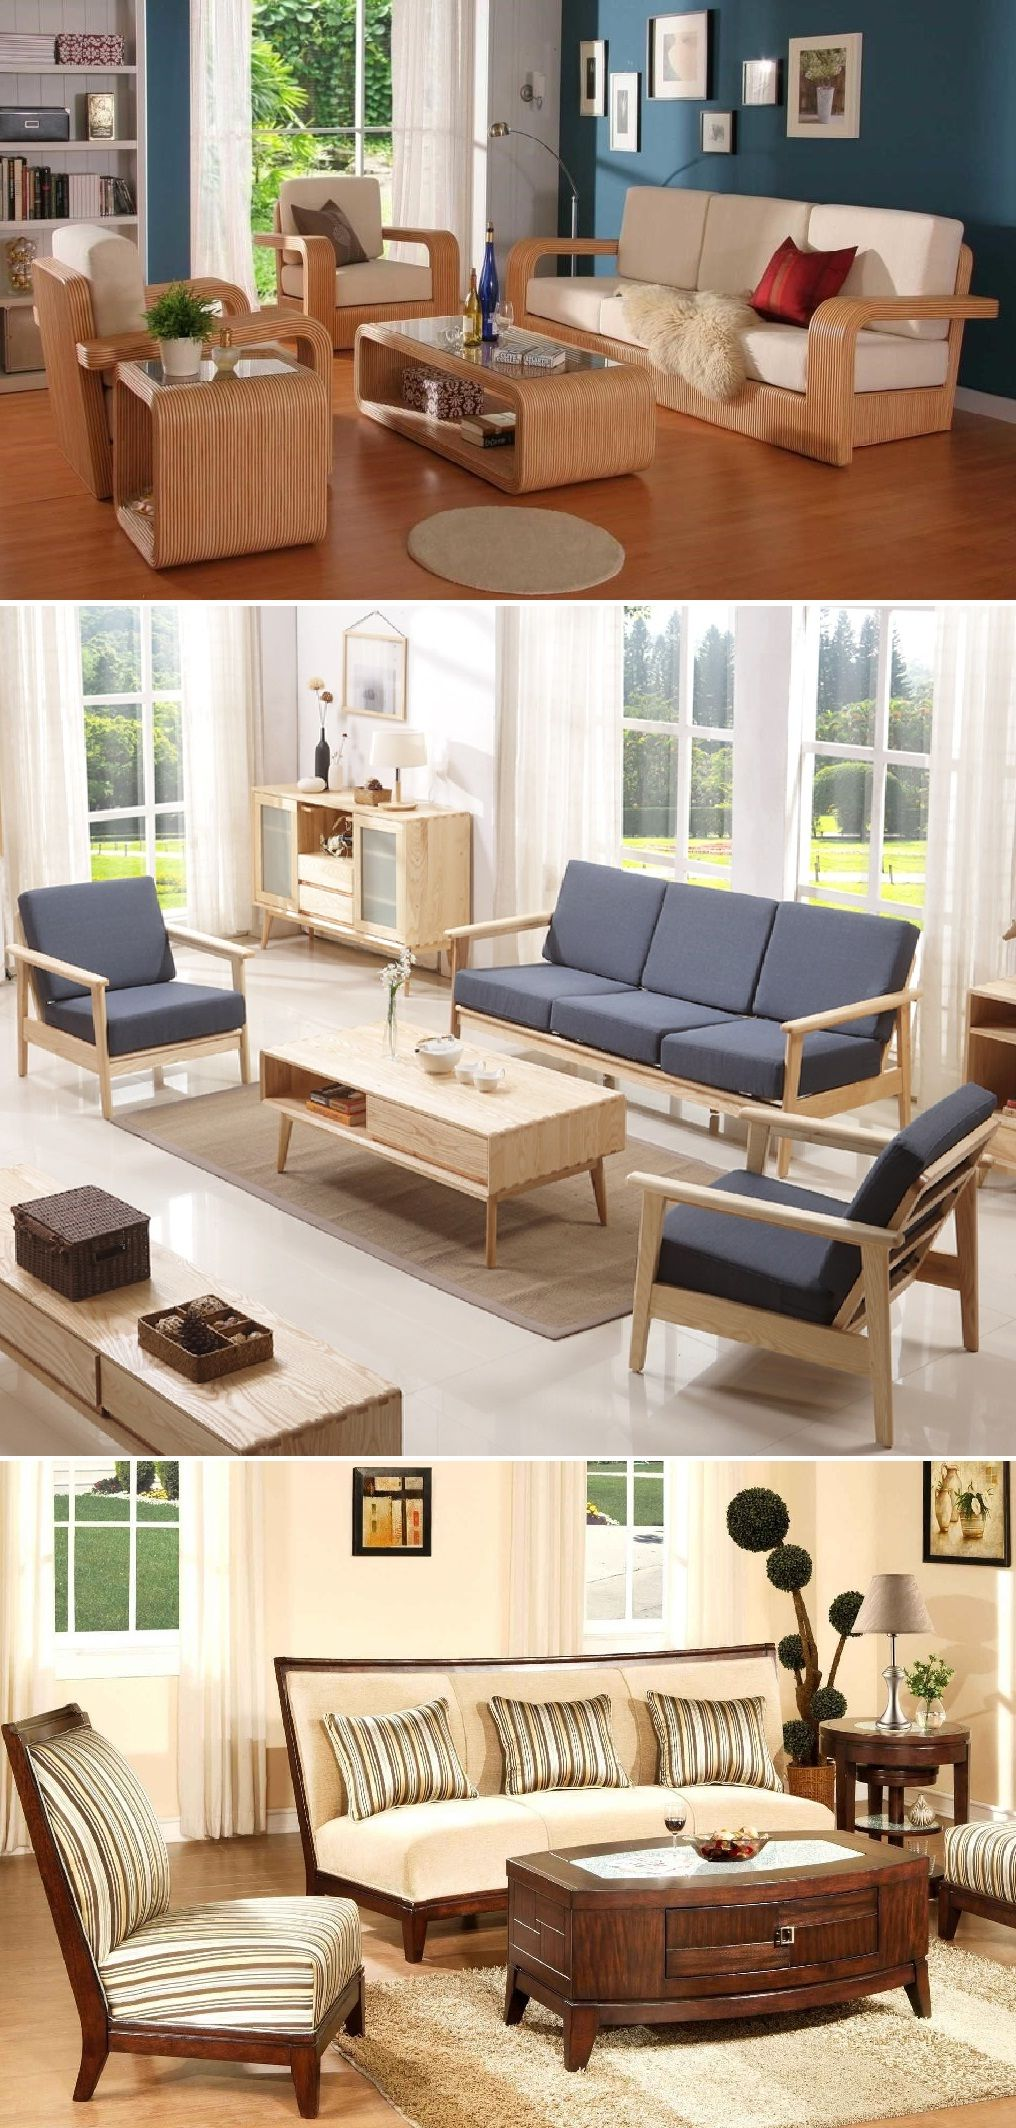 Drawing Room Furniture Simple Wooden Sofa Design For Drawing Room Couches And Furniture